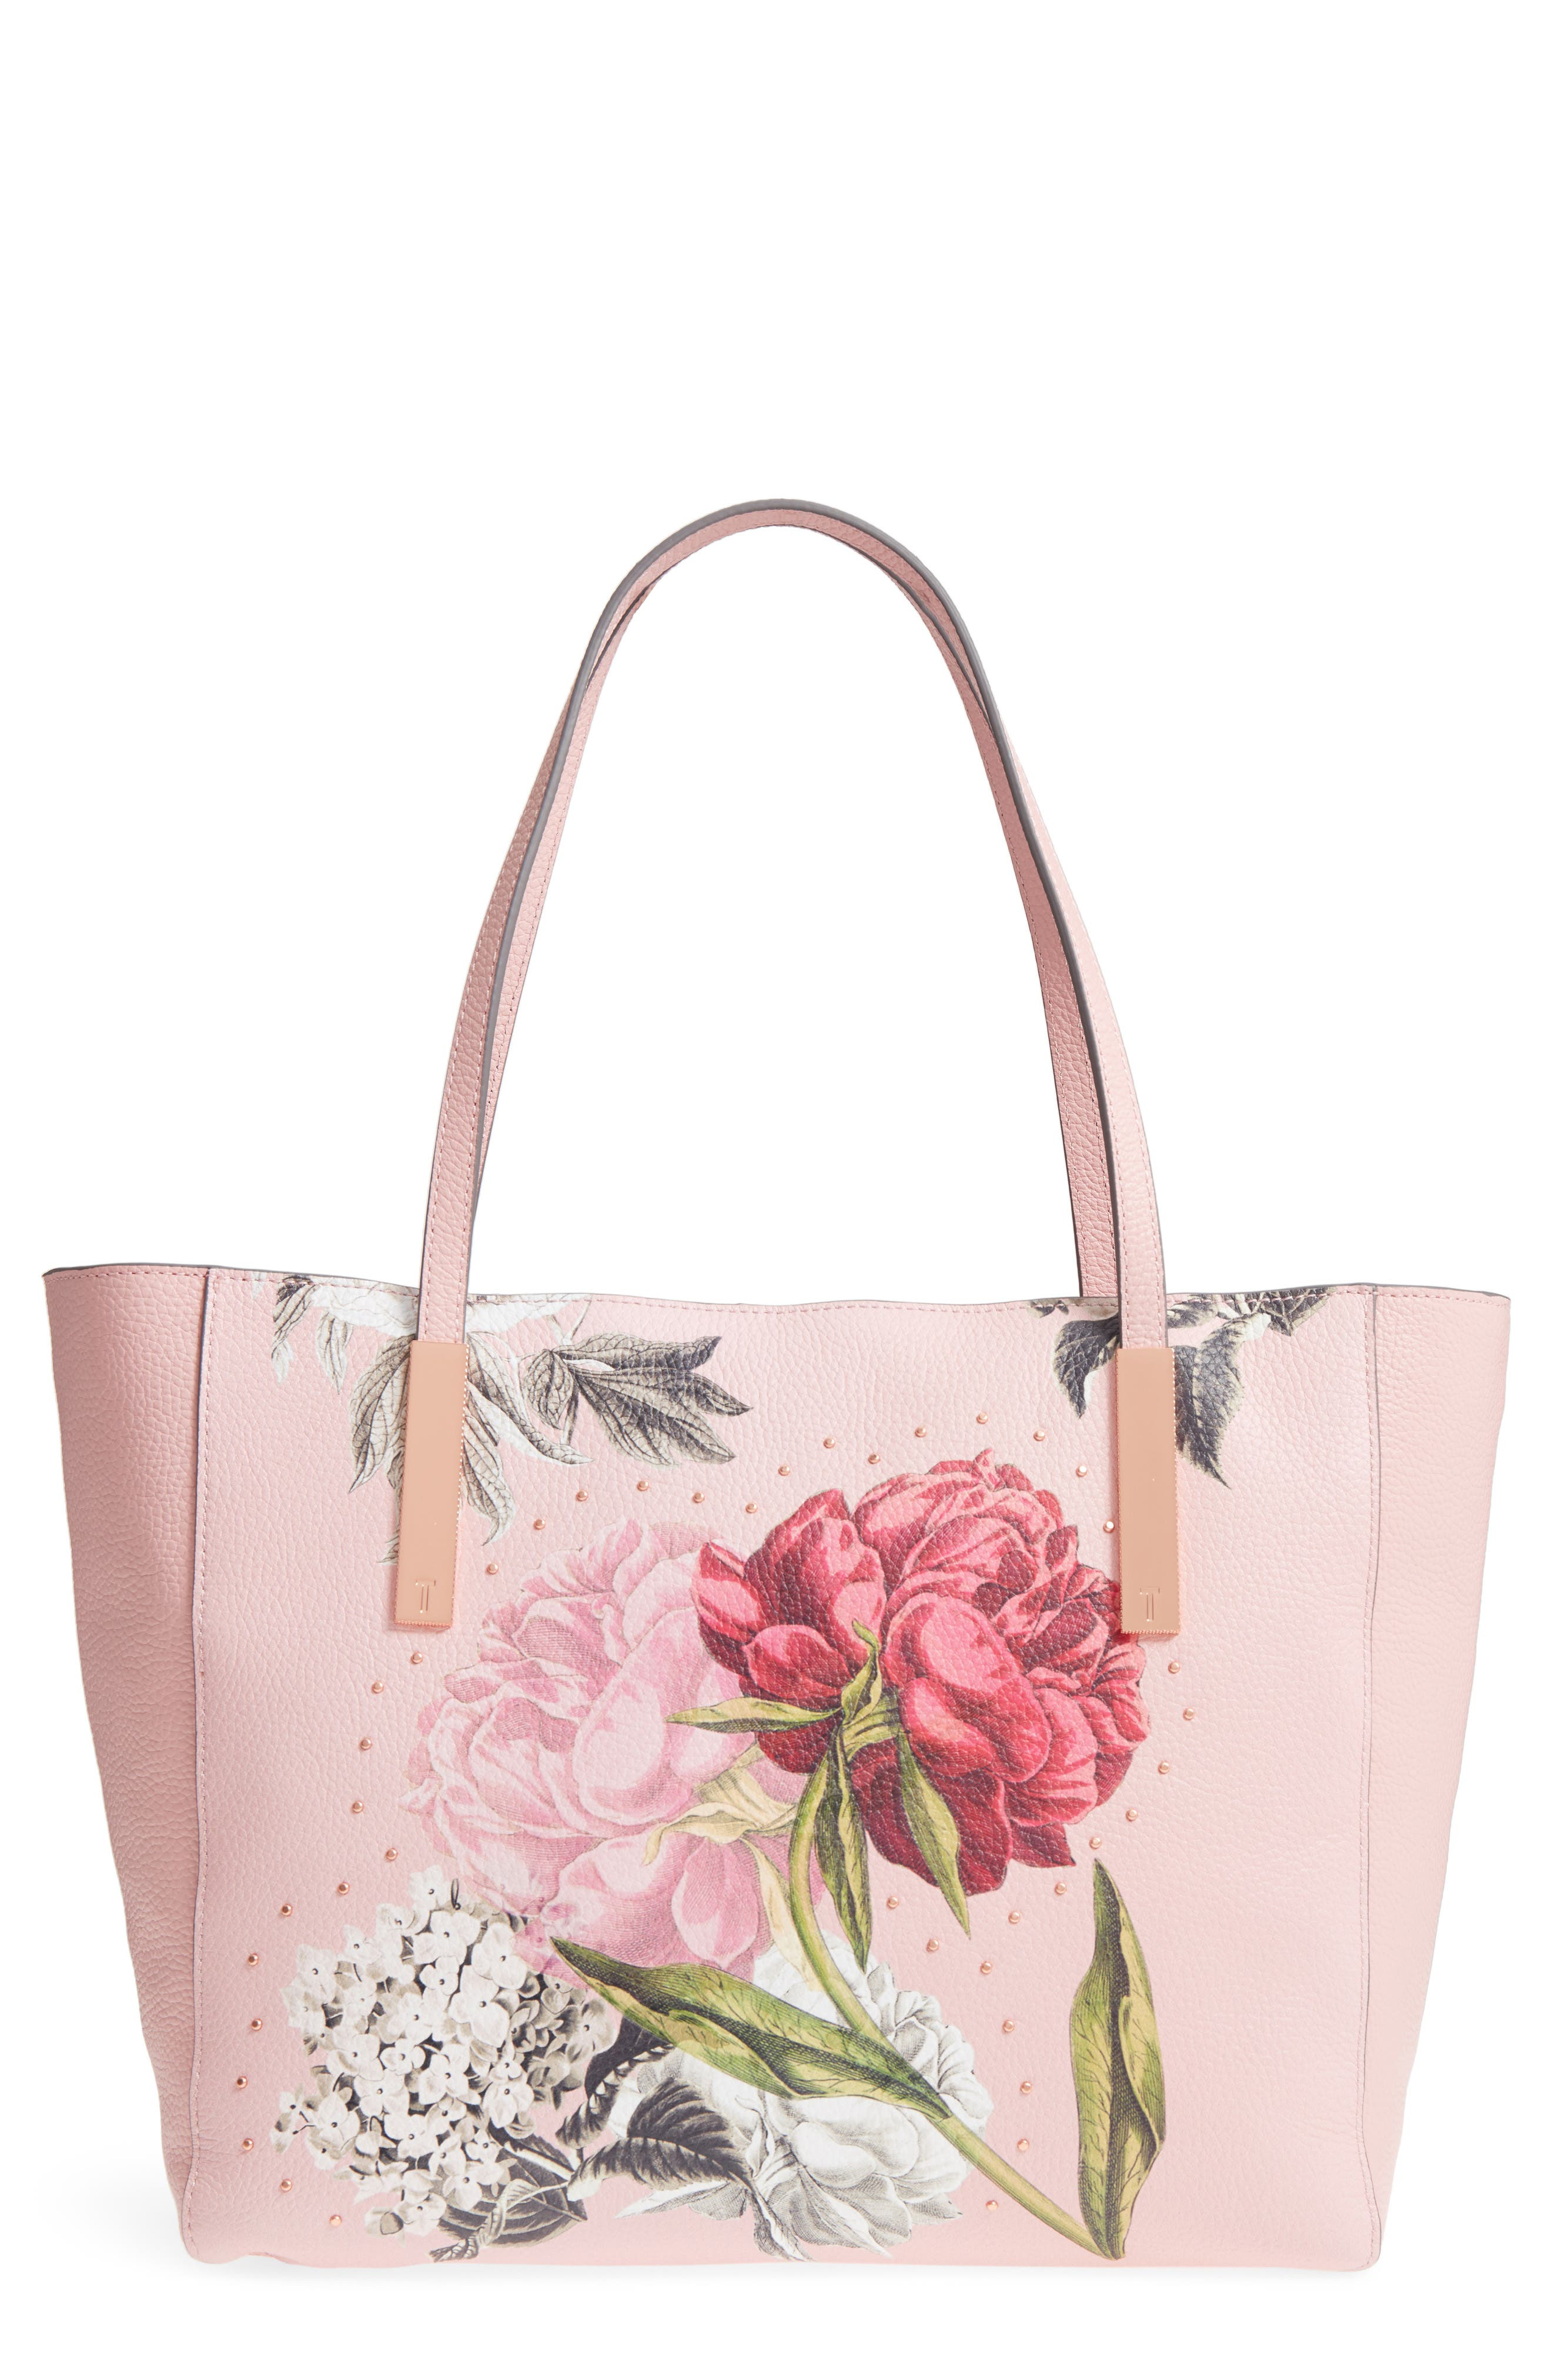 Palace Gardens Large Leather Tote,                             Main thumbnail 1, color,                             Dusky Pink